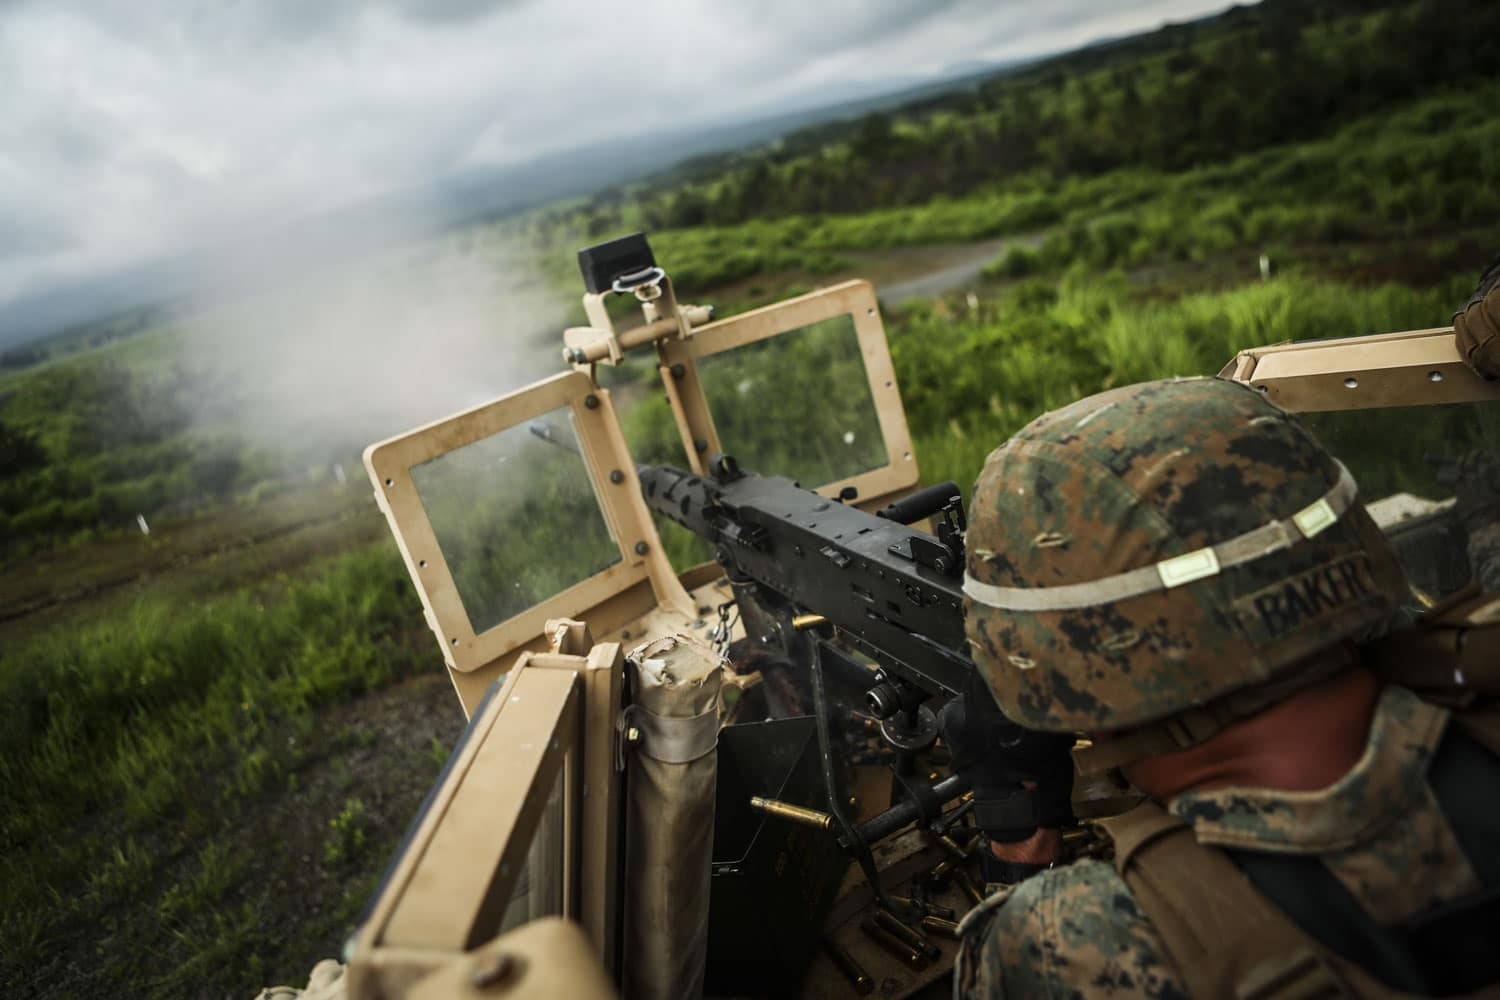 Pfc. Brett M. Baker, a Haskell, New Jersey native and anti-tank missile-man with Combined Anti-Armor Team 2, Weapons Company, 1st Battalion, 3rd Marine Regiment, fires .50 caliber rounds on a mounted M2 .50 caliber machine gun down range during Exercise Fuji Viper aboard Camp Fuji, Japan.